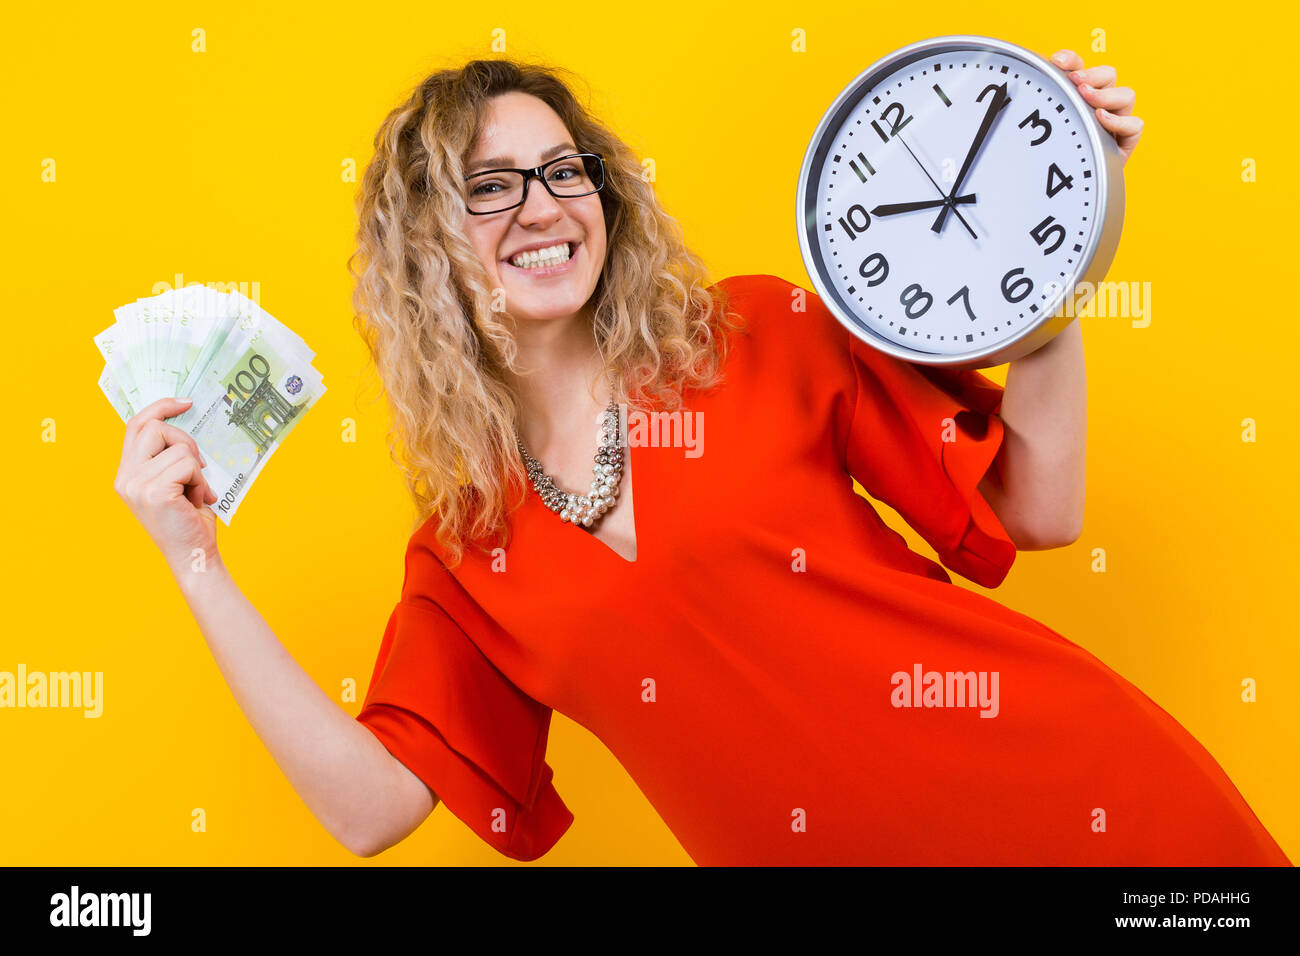 Woman in dress with clocks and fan of banknotes Stock Photo